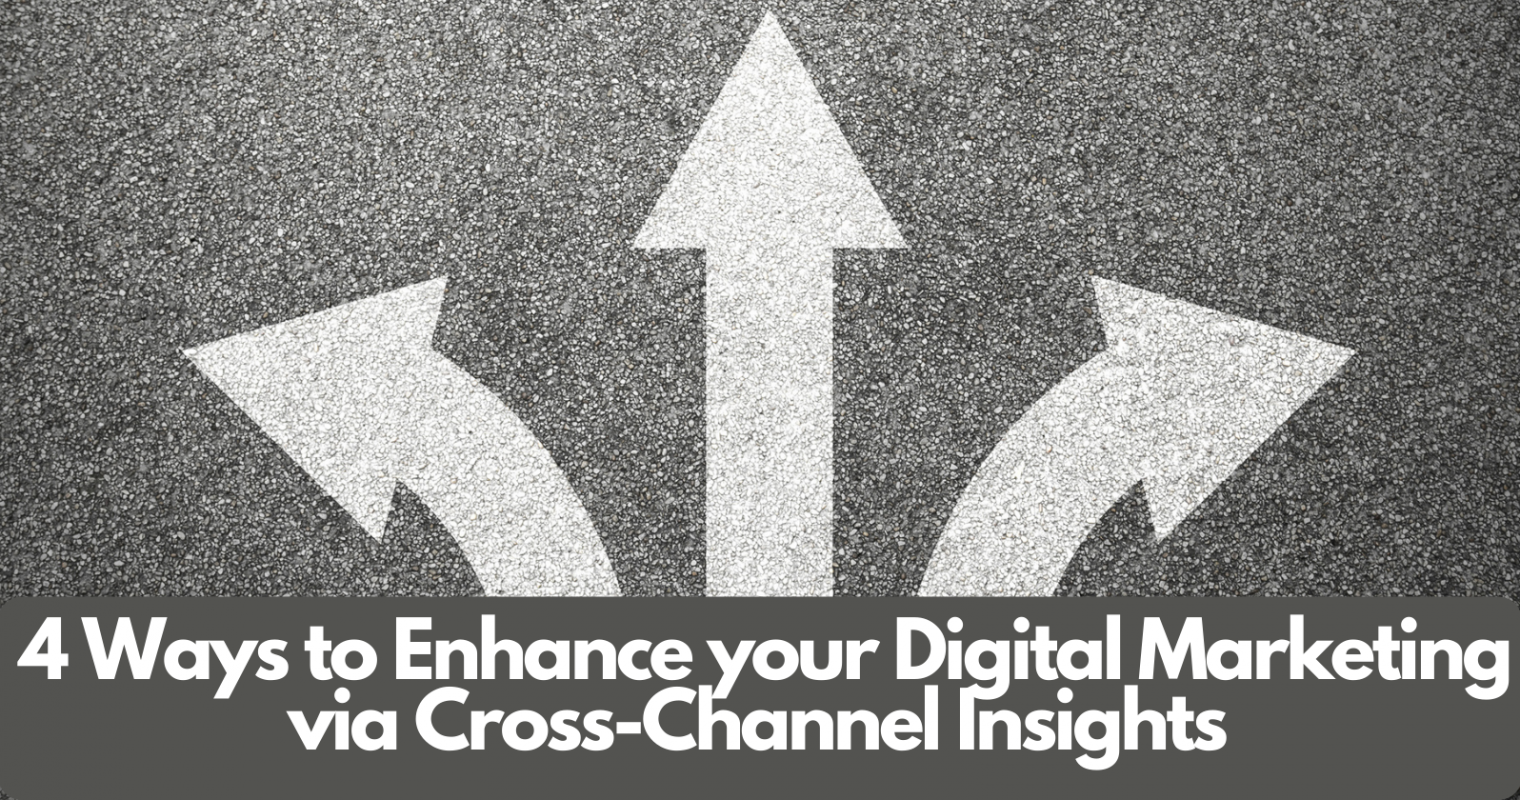 4 Ways to Use Cross-Channel Insights in Digital Marketing